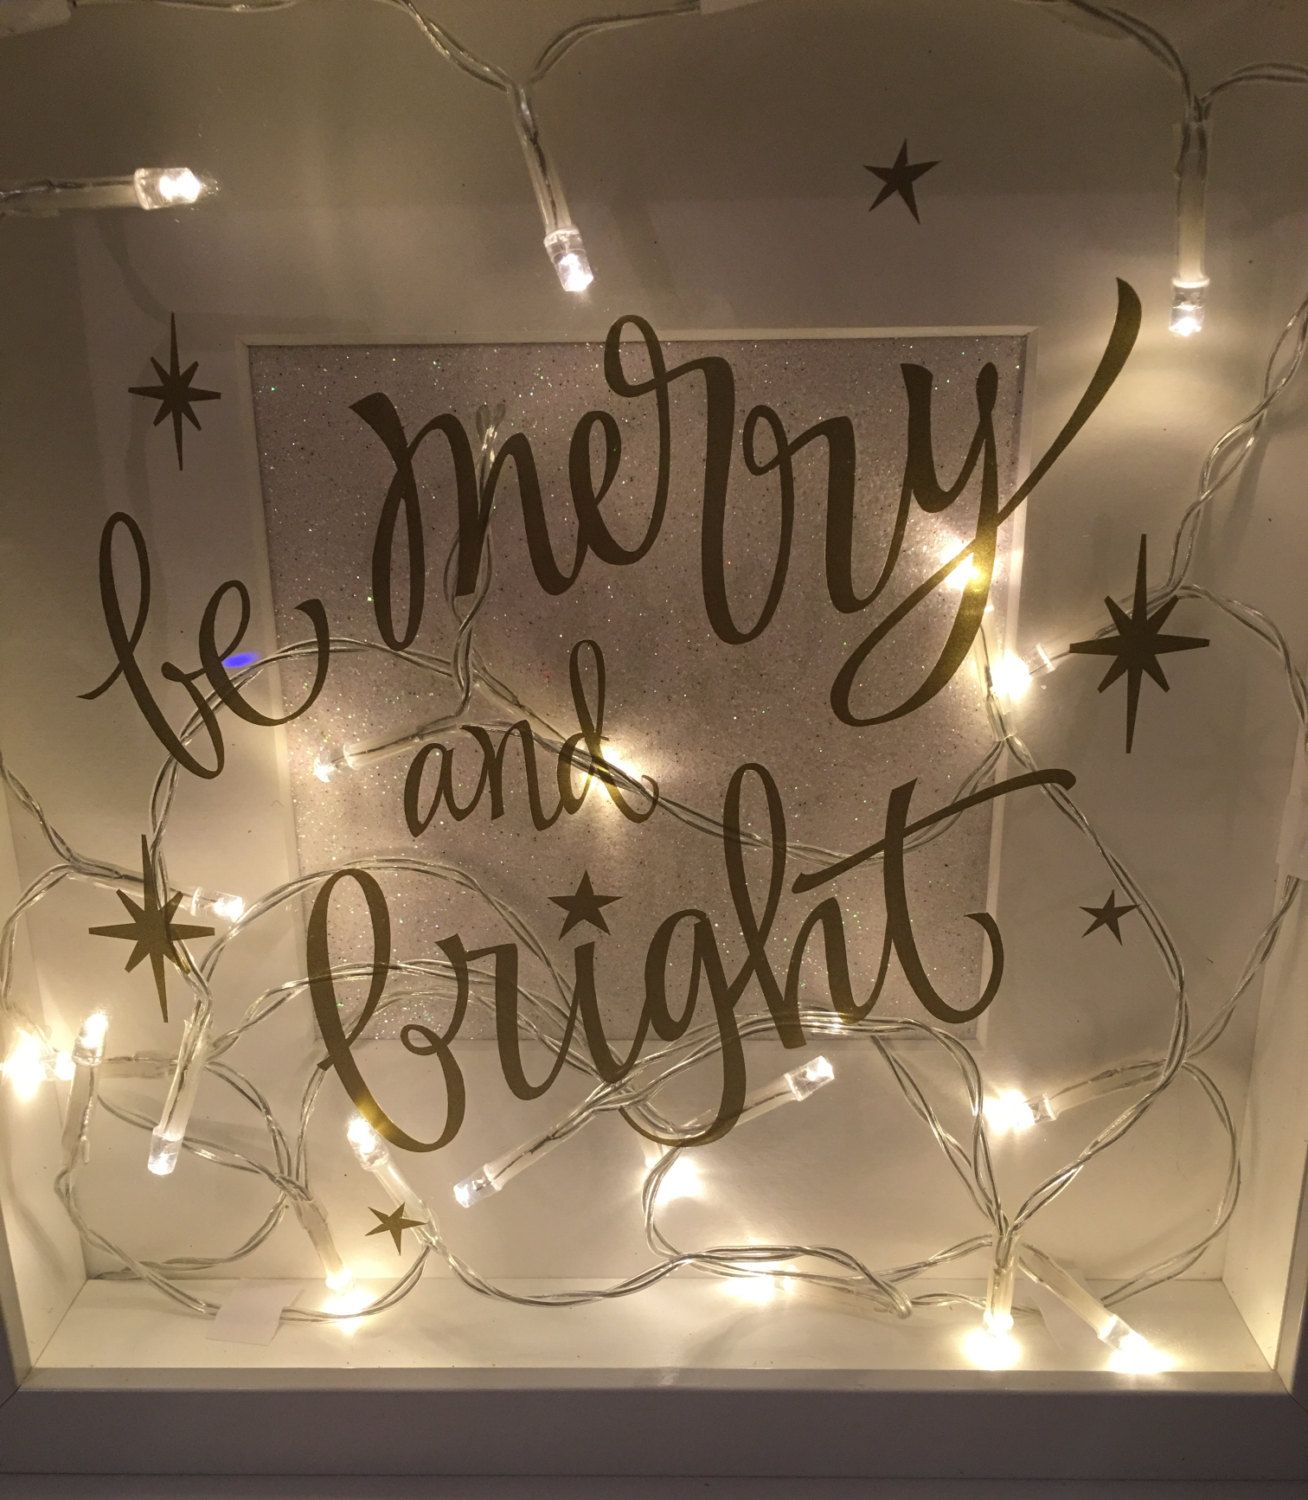 Festive Light Up Christmas Box Frame By Emmyloucrafts On Etsy